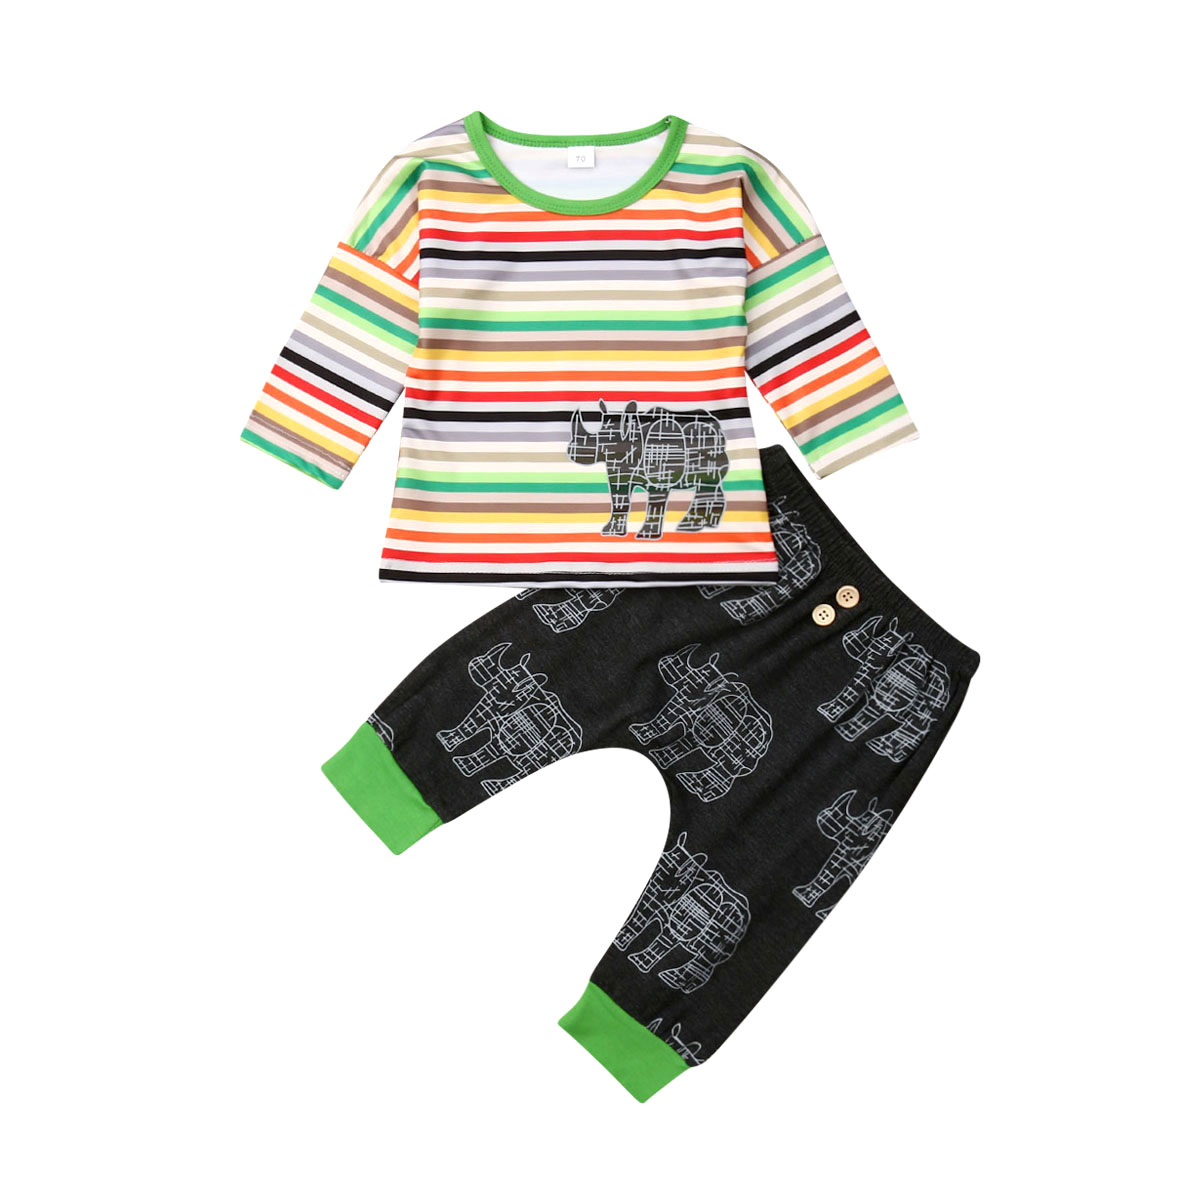 2019 Newly 0-24M Infant Kids Baby Boys Girls Clothes Sets Rainbow Striped Long Sleeve Tops+Pants